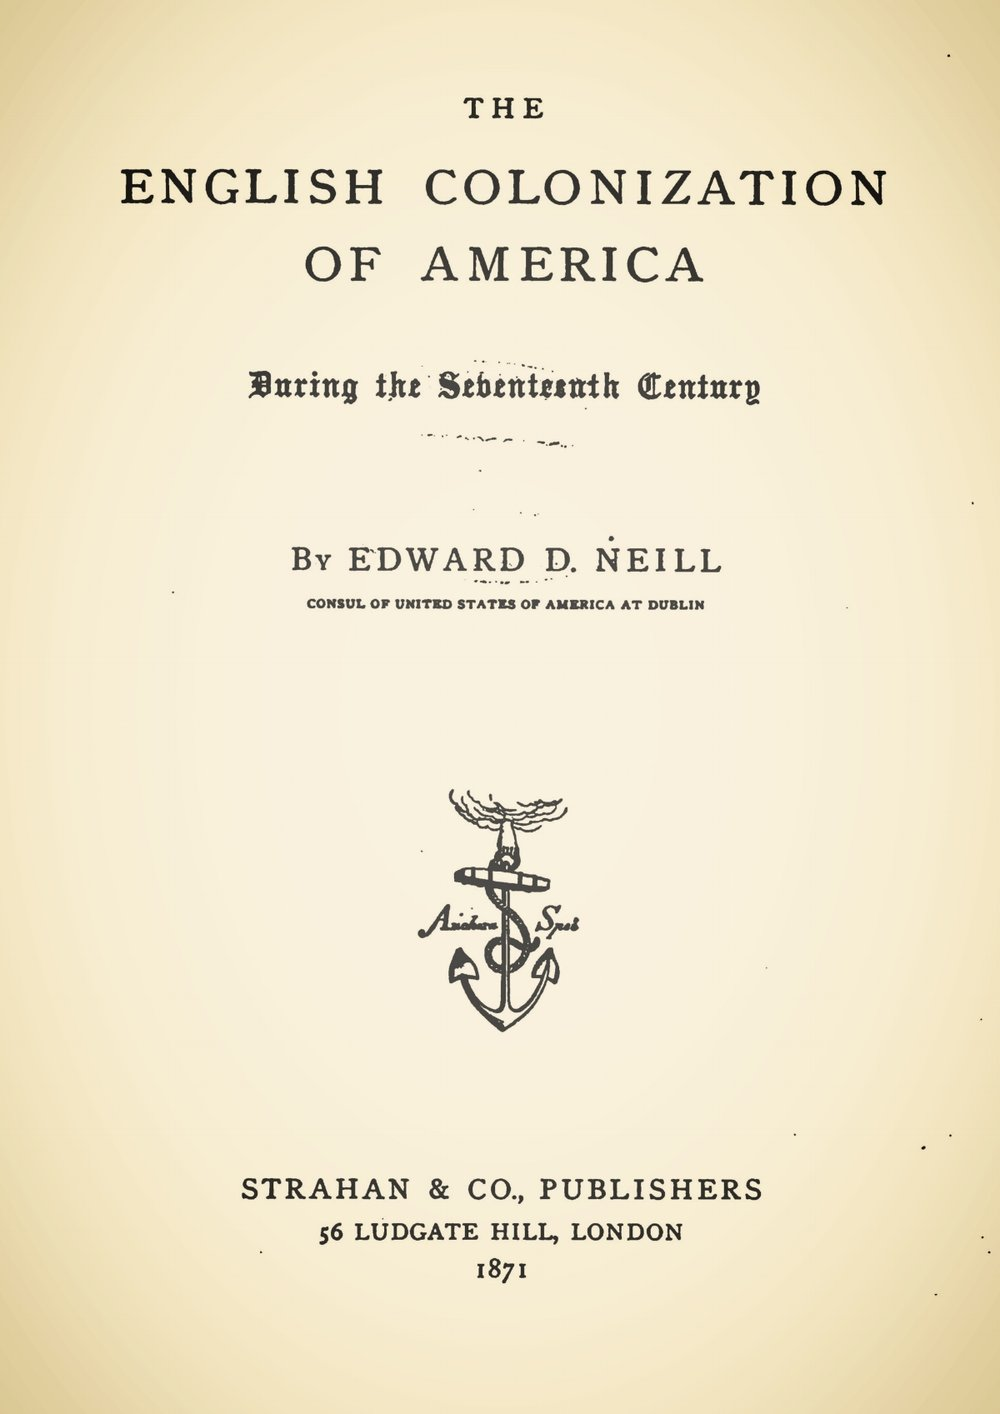 Neill, Edward Duffield, The English Colonization of America Title Page.jpg